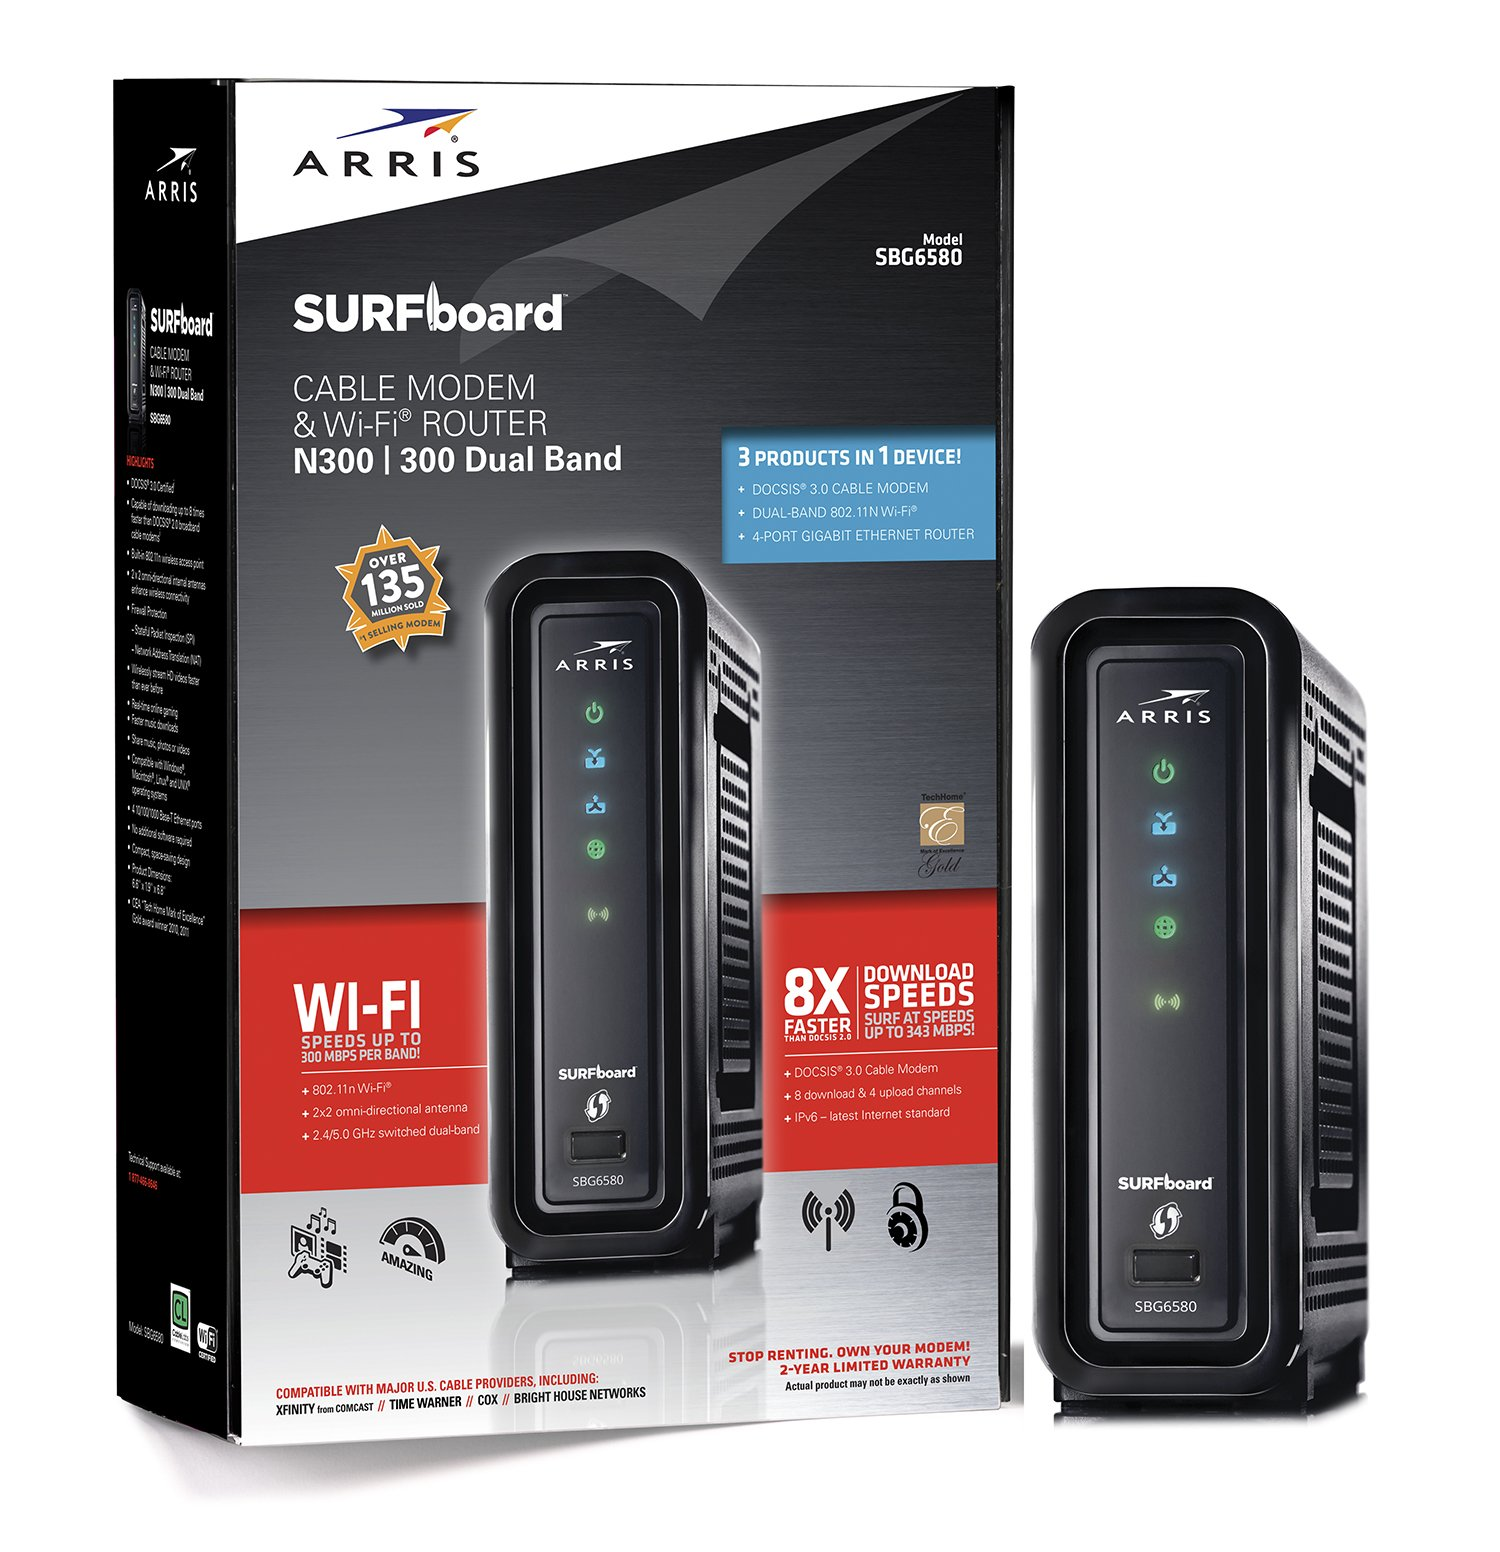 ARRIS Surfboard SBG6580-2 8x4 DOCSIS 3.0 Cable Modem/Wi-Fi N600 (N300 2.4Ghz + N300 5GHz) Dual Band Router - Retail Packaging Black (570763-034-00) by ARRIS